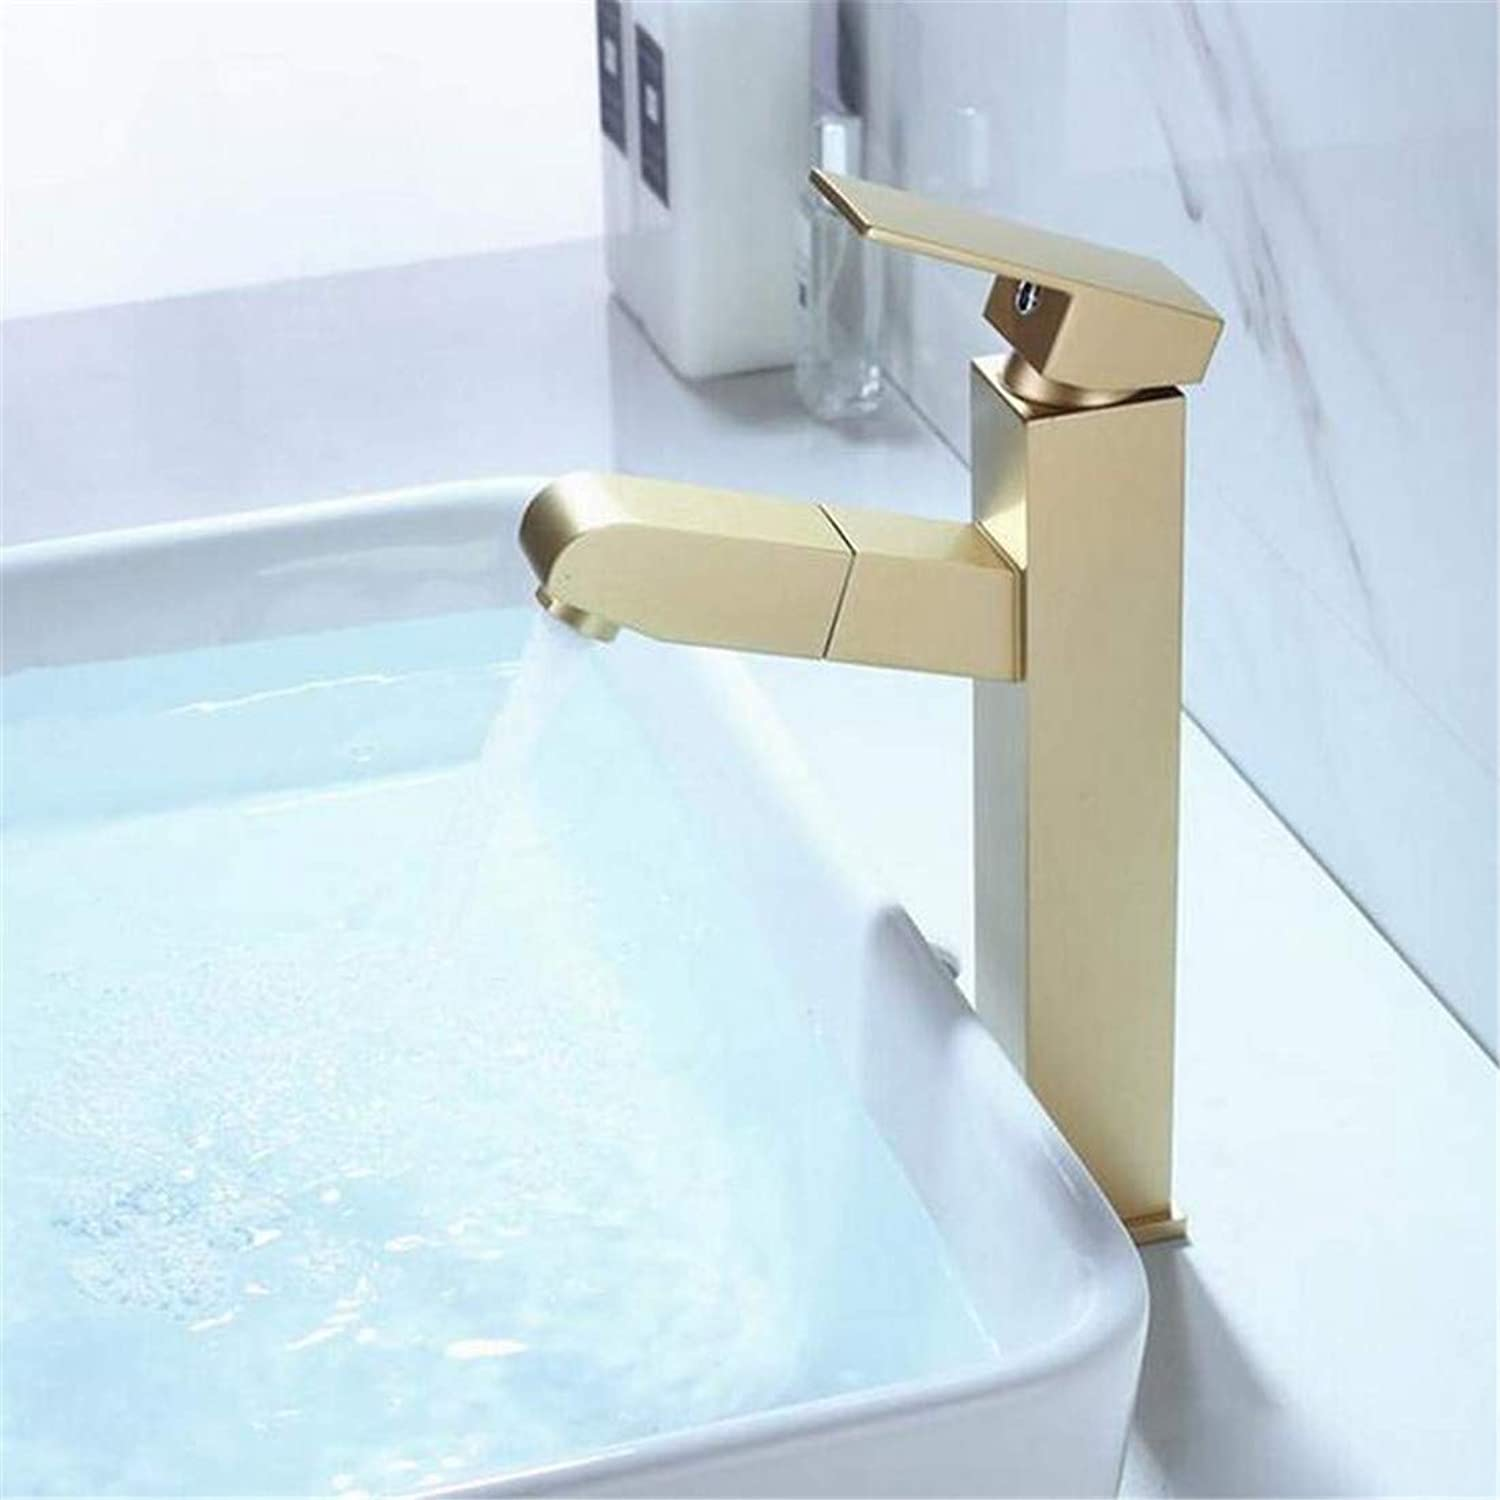 Faucet Luxury Plated Modern Faucet Faucet Washbasin Mixer Brass Bathroom Sink Faucet Pull Out Basin Faucet Cold and Hot Water Mixer Tap